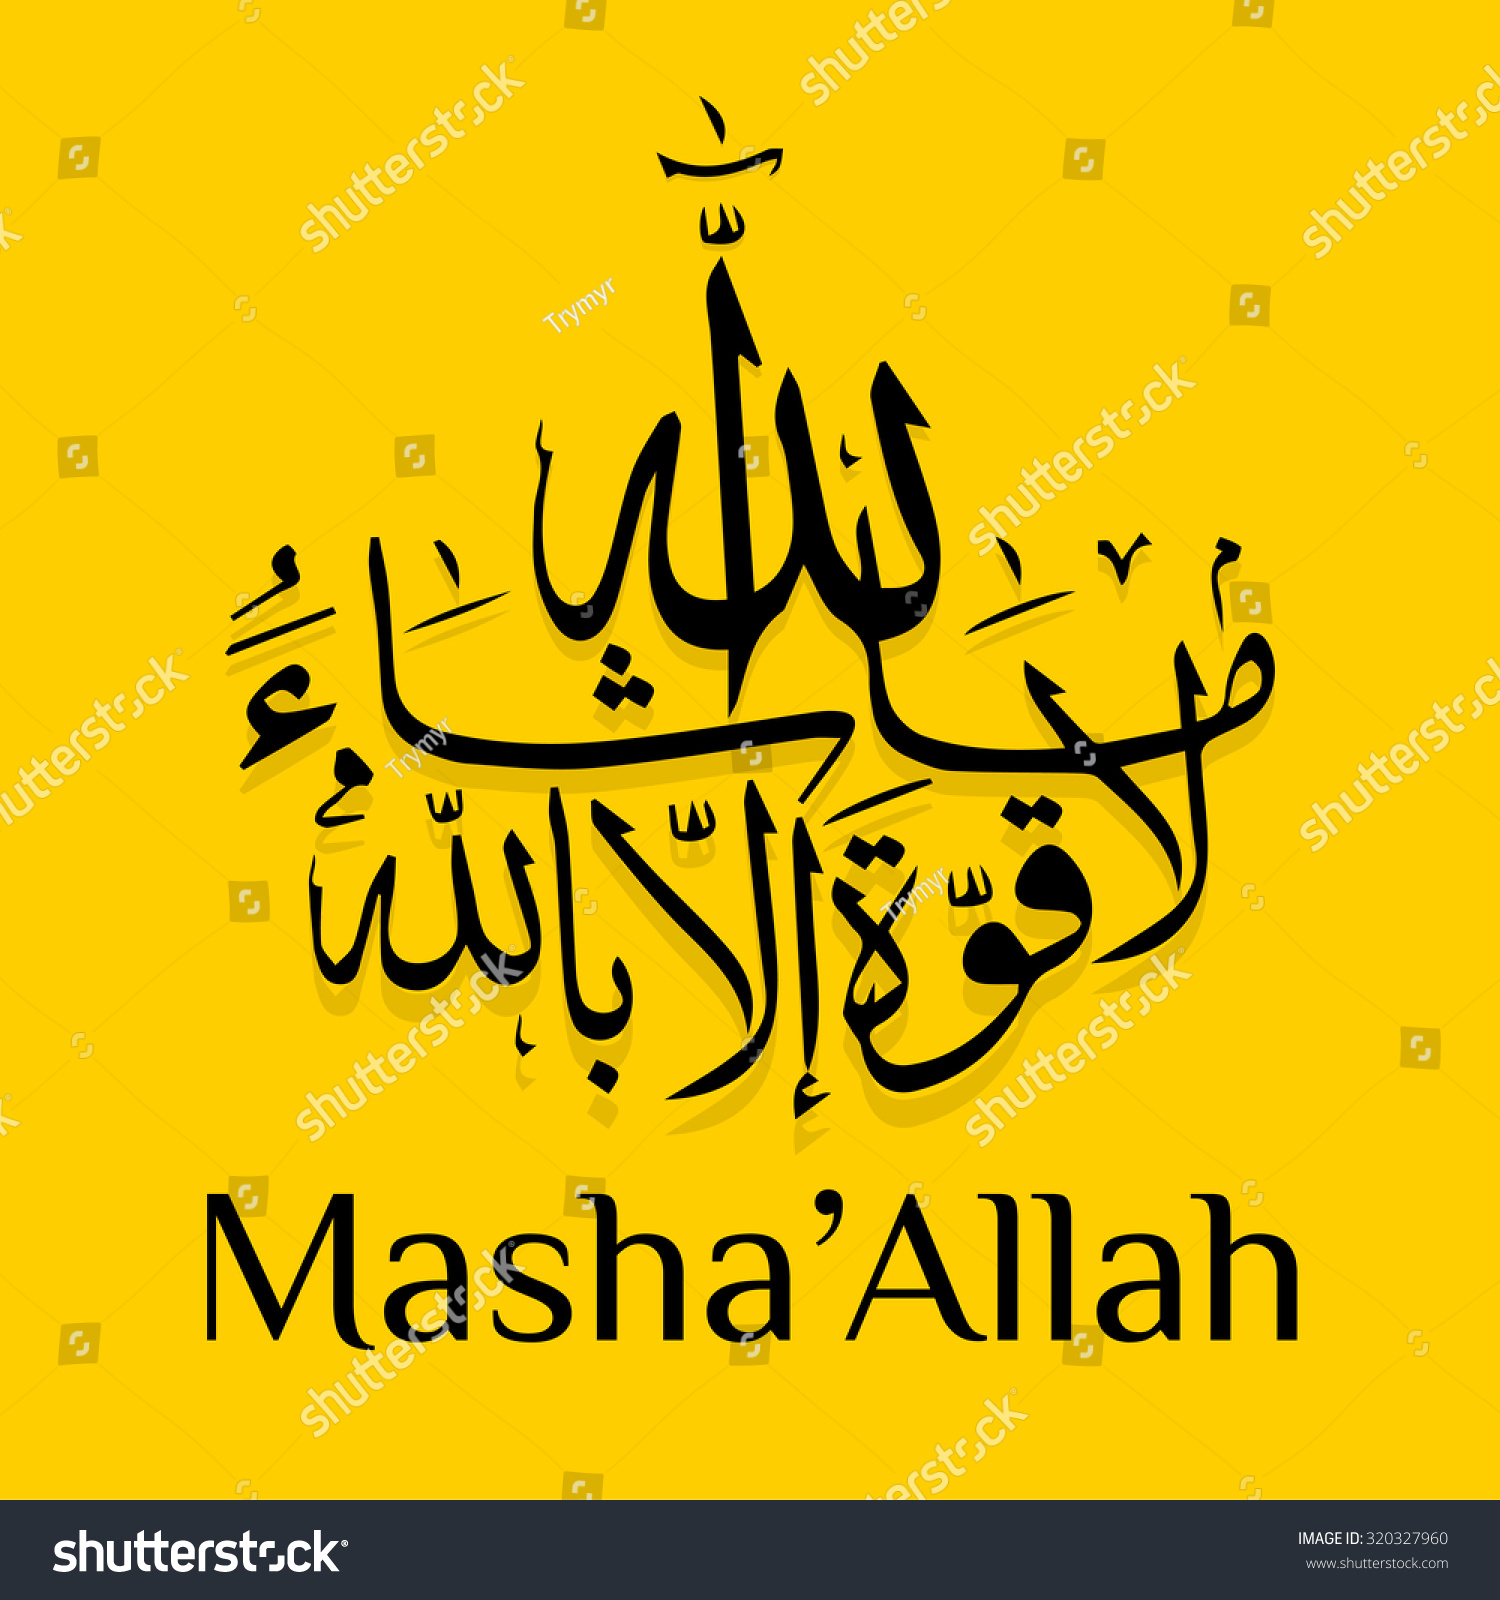 Vector illustration masha allah it is as wills with